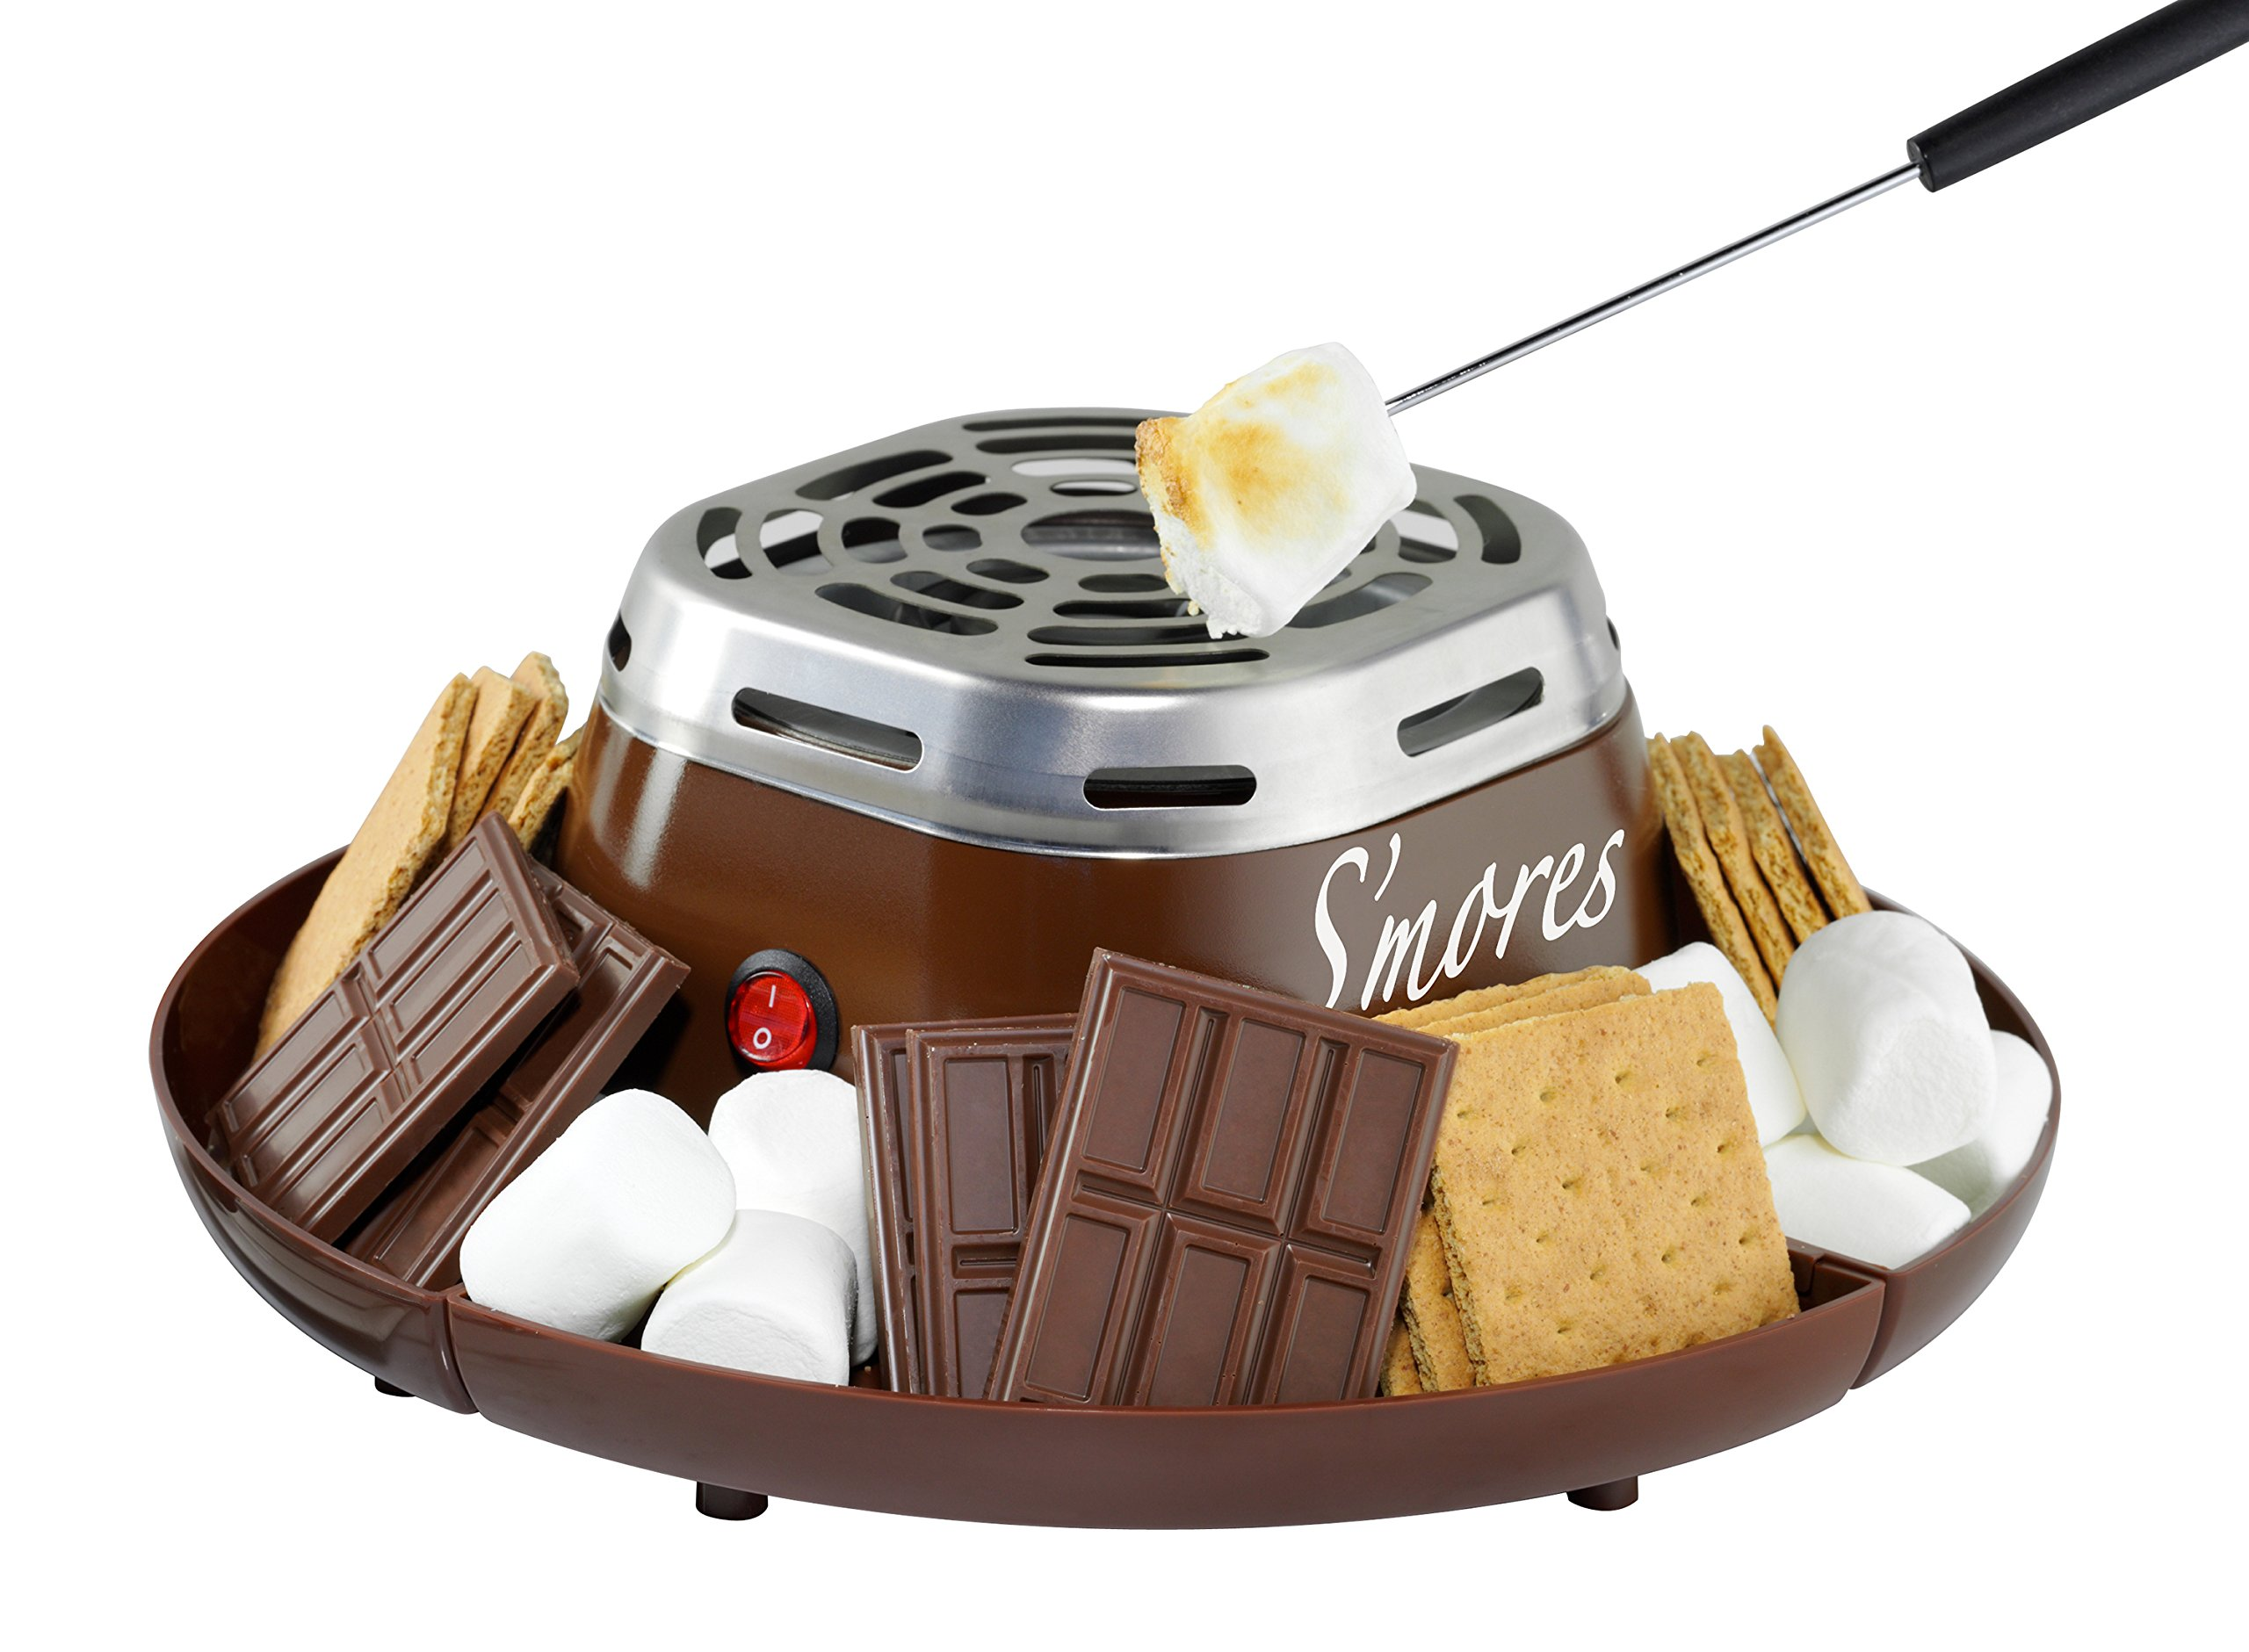 Nostalgia SMM200 Indoor Electric Stainless Steel S'mores Maker with 4 Compartment Trays for Graham Crackers, Chocolate, Marshmallows and 2 Roasting Forks by NOSTALGIA